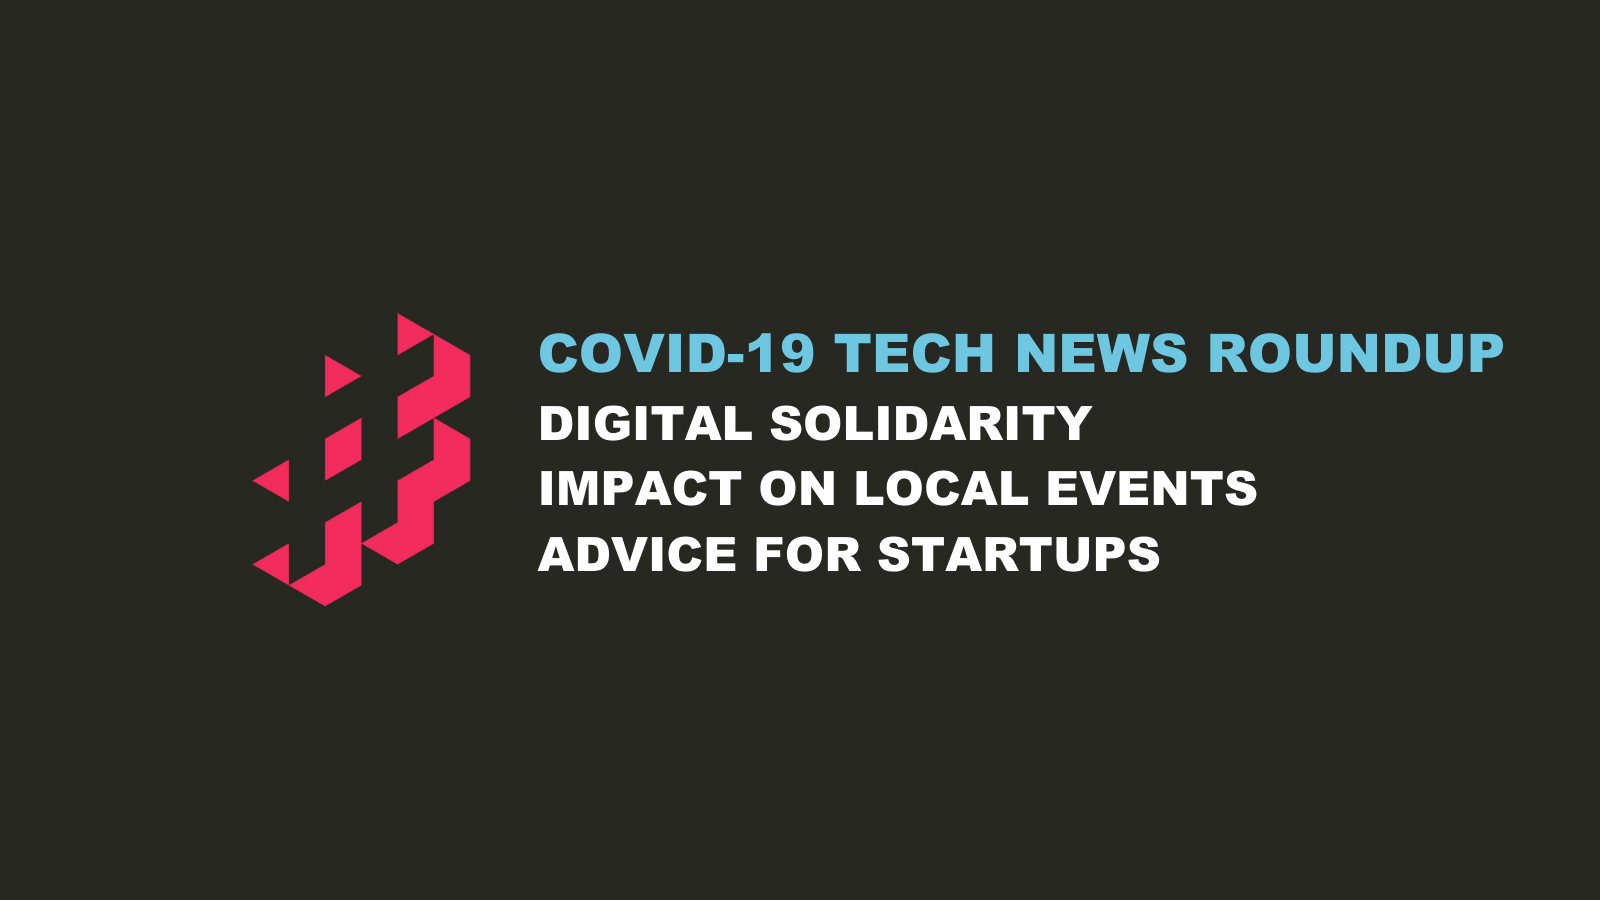 , COVID-19 Tech News Roundup